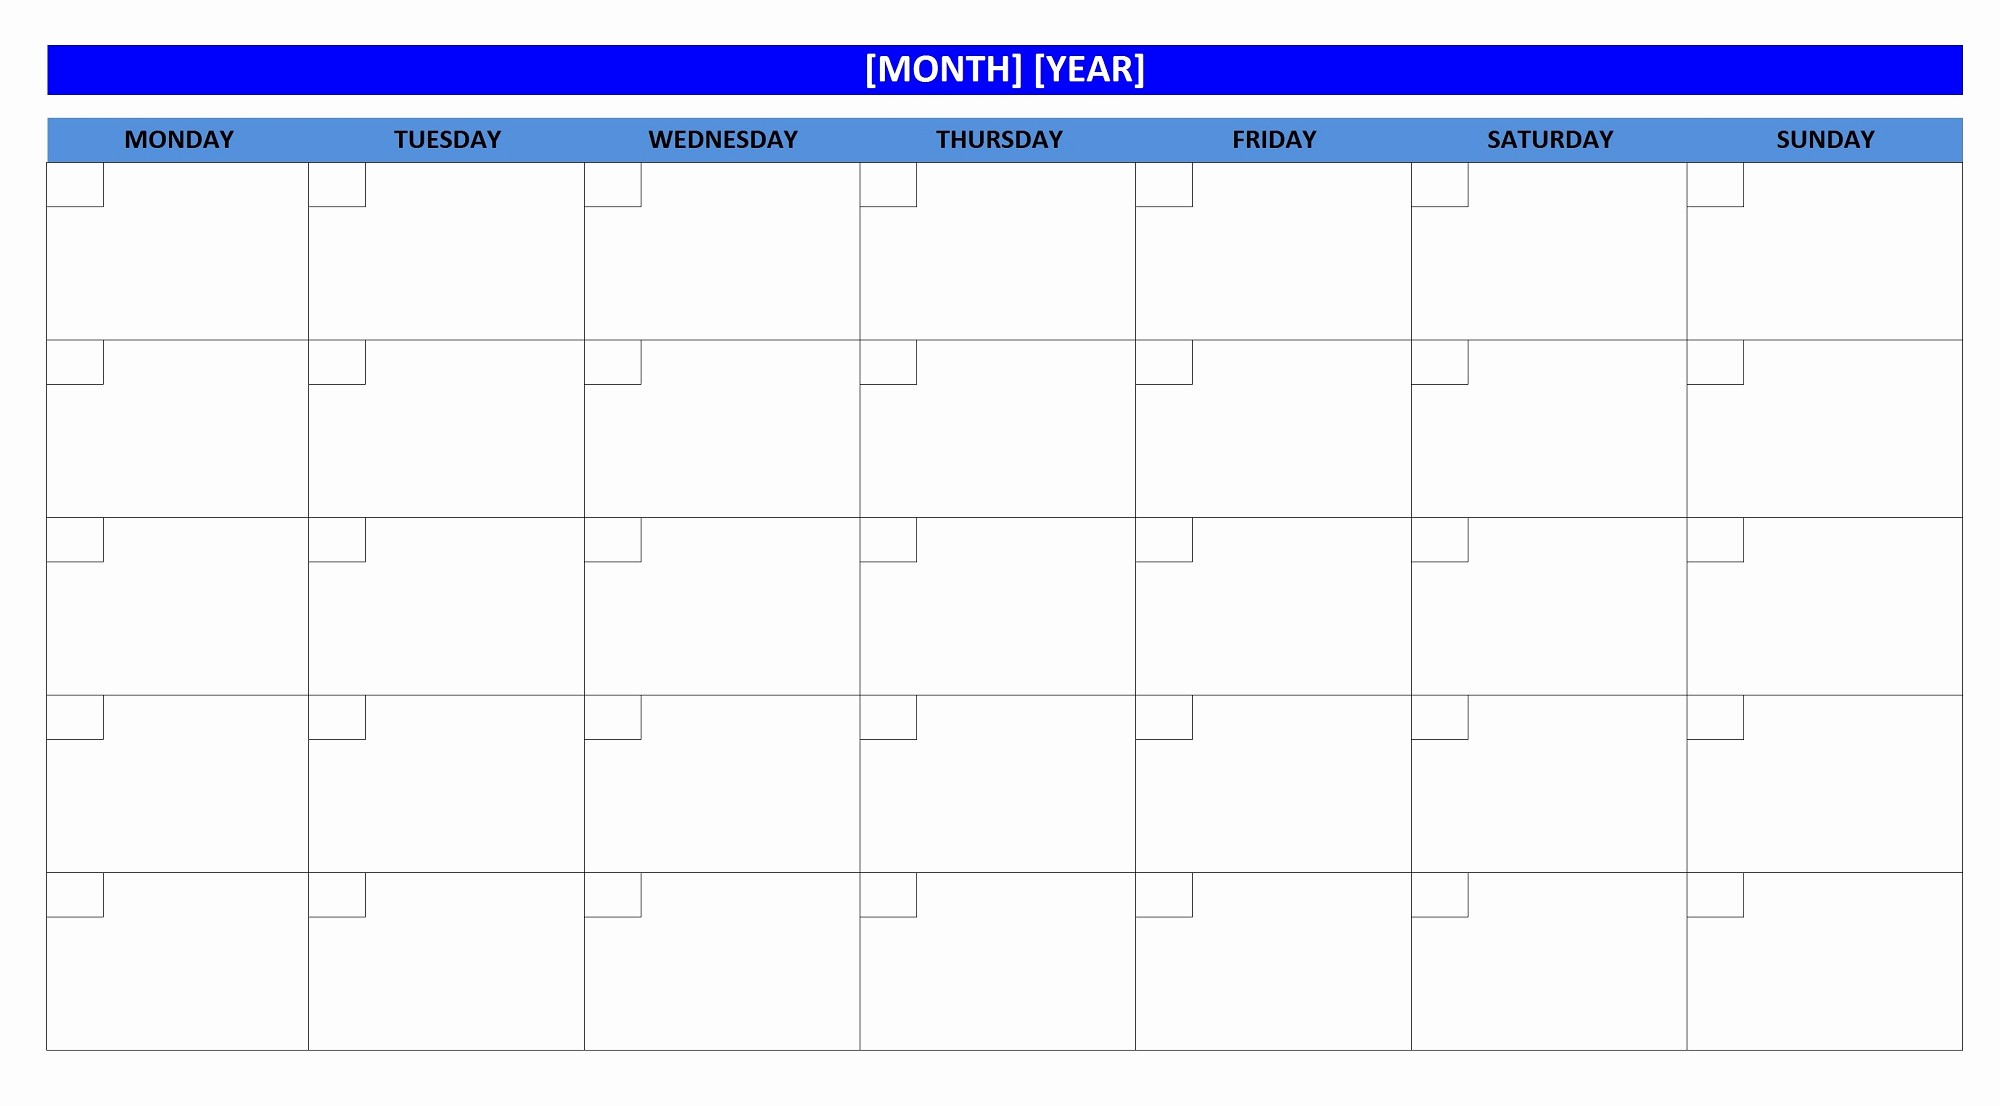 Printable Weekly Calendars with Times Fresh Blank Weekly Calendars Printable